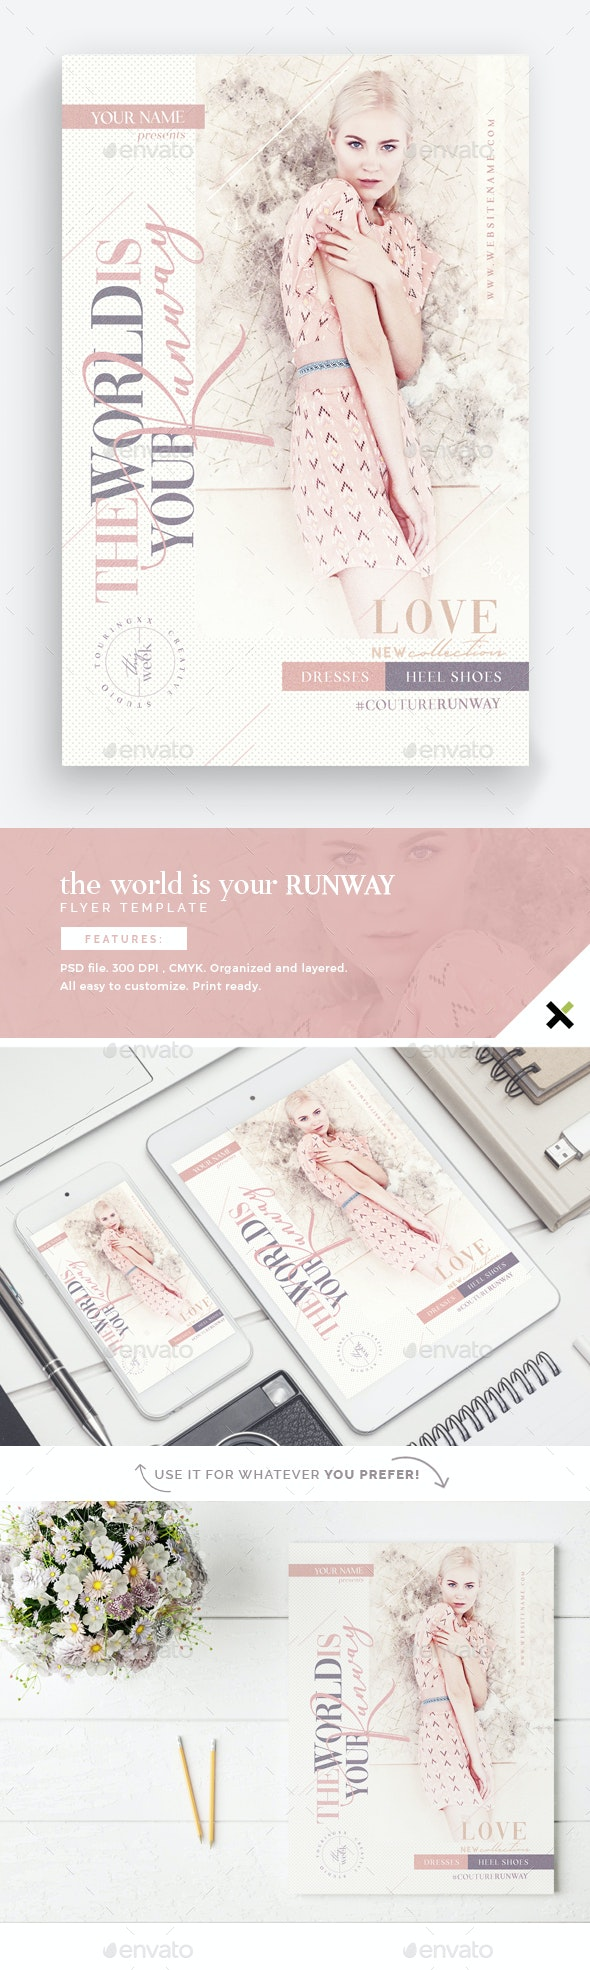 The World Is Your Runway Flyer Template - Flyers Print Templates